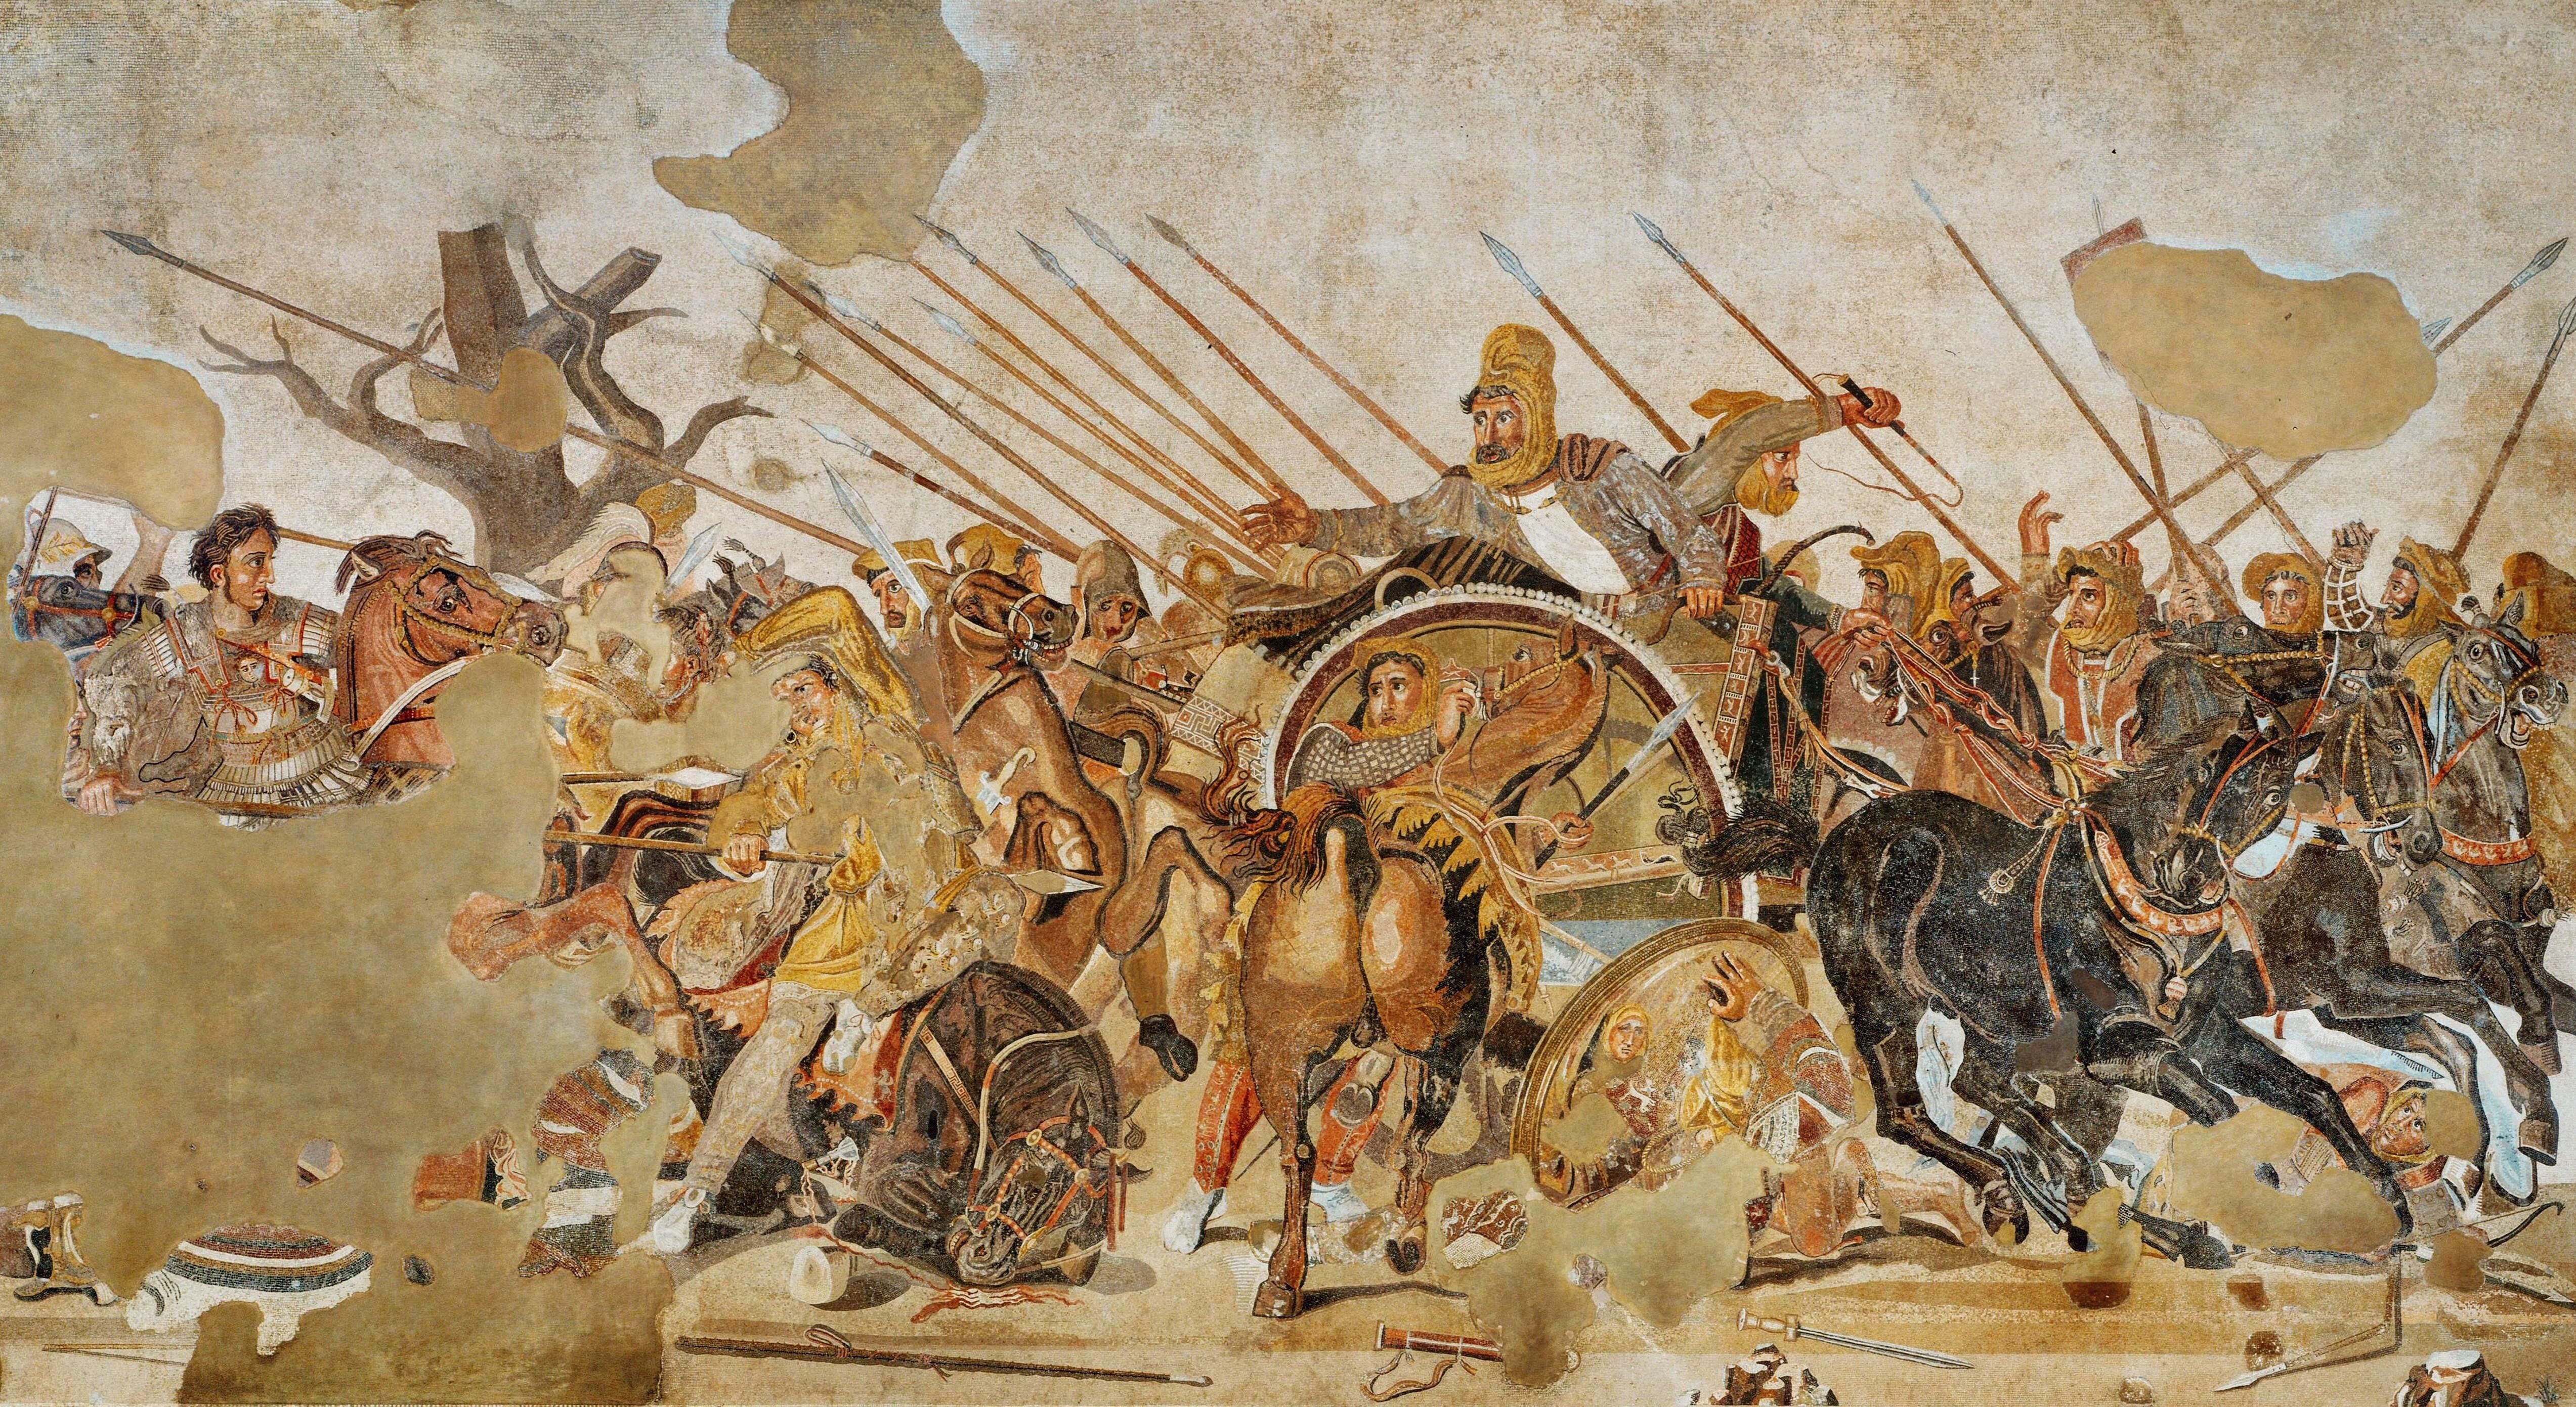 alexander the great and the battle Battle of gaugamela mosul, iraq - the battle of gaugamela, also called the battle of arbela, was the decisive battle of alexander the great's invasion of the persian achaemenid empire.